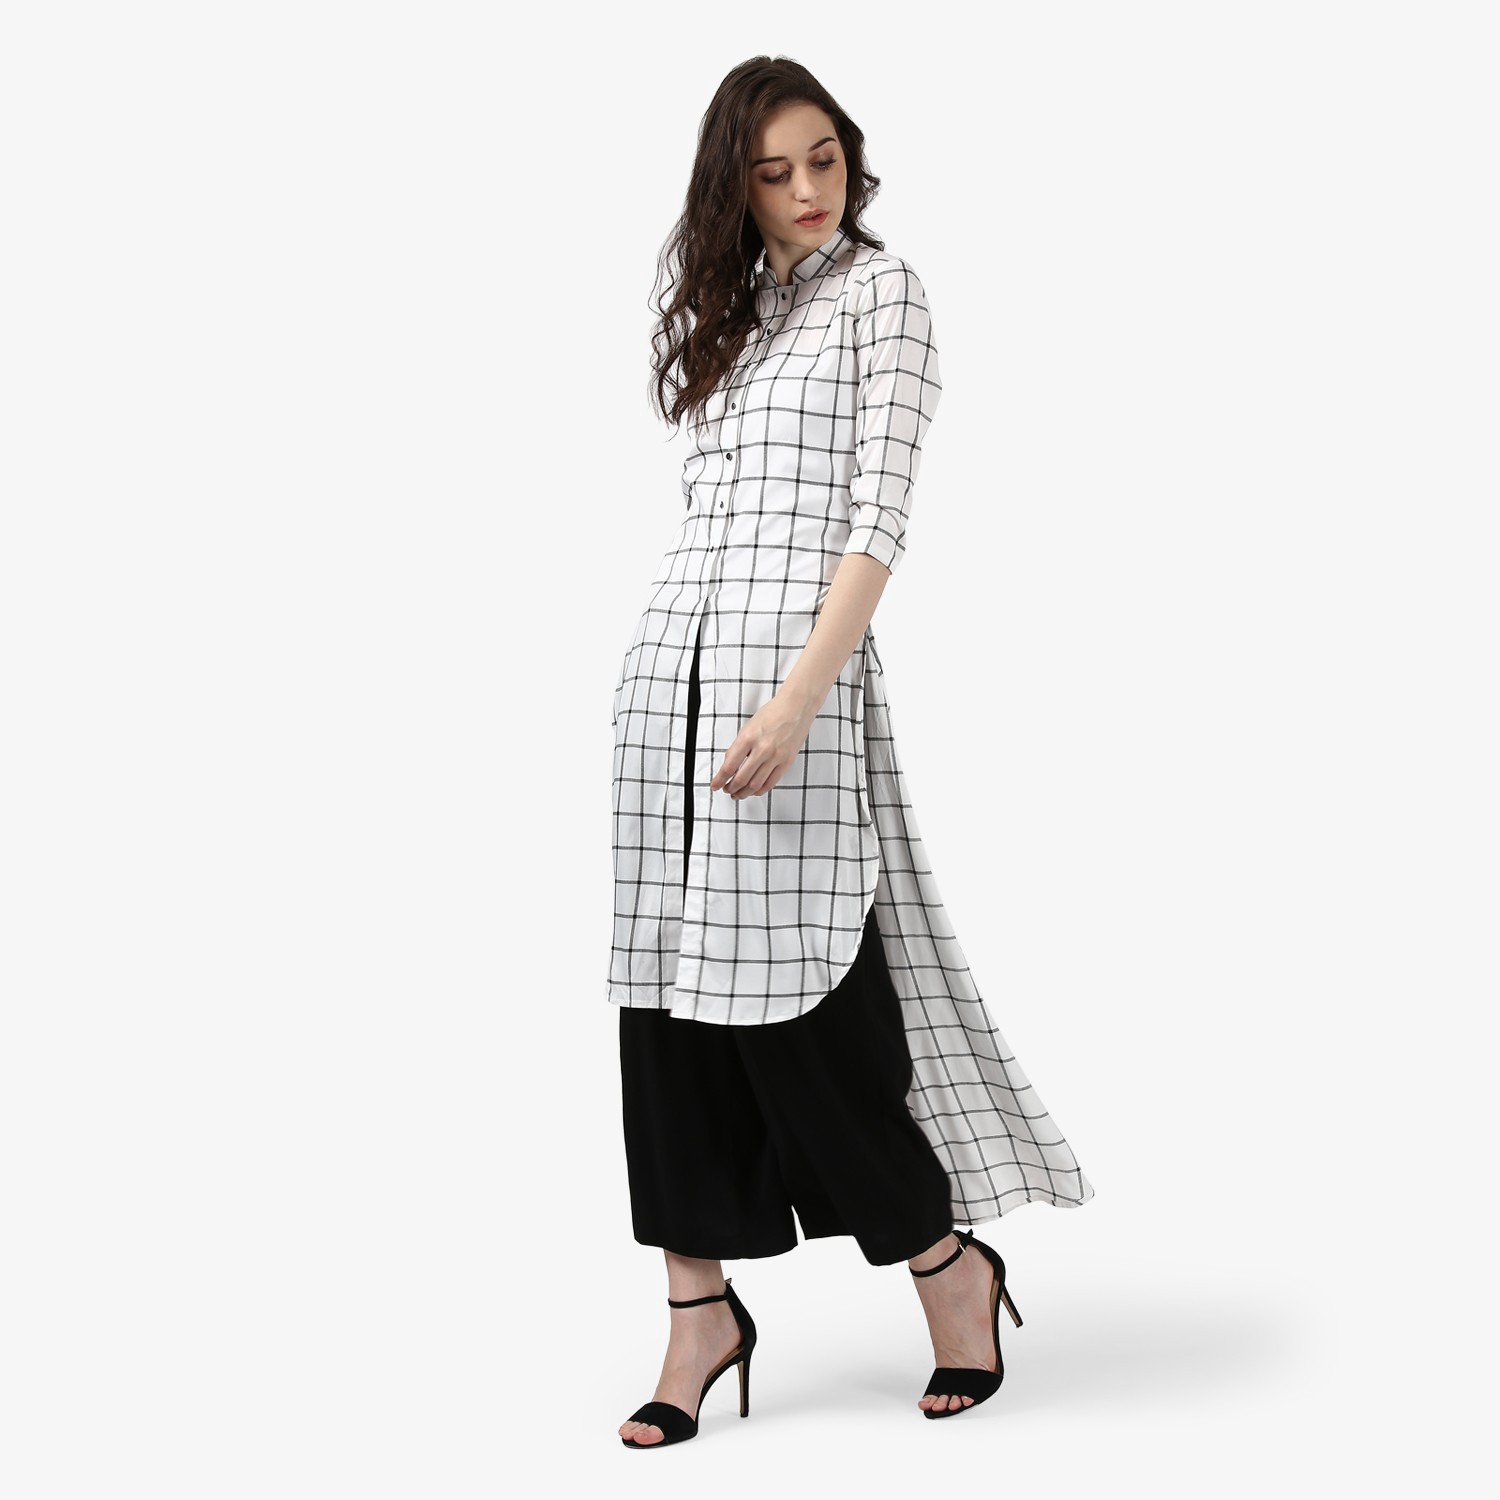 1ced24469efb0 It is one of the most popular styles of kurti. In this sort of kurti, the  front trim is shorter than the back side. The High-low kurti gives you  sleek looks ...